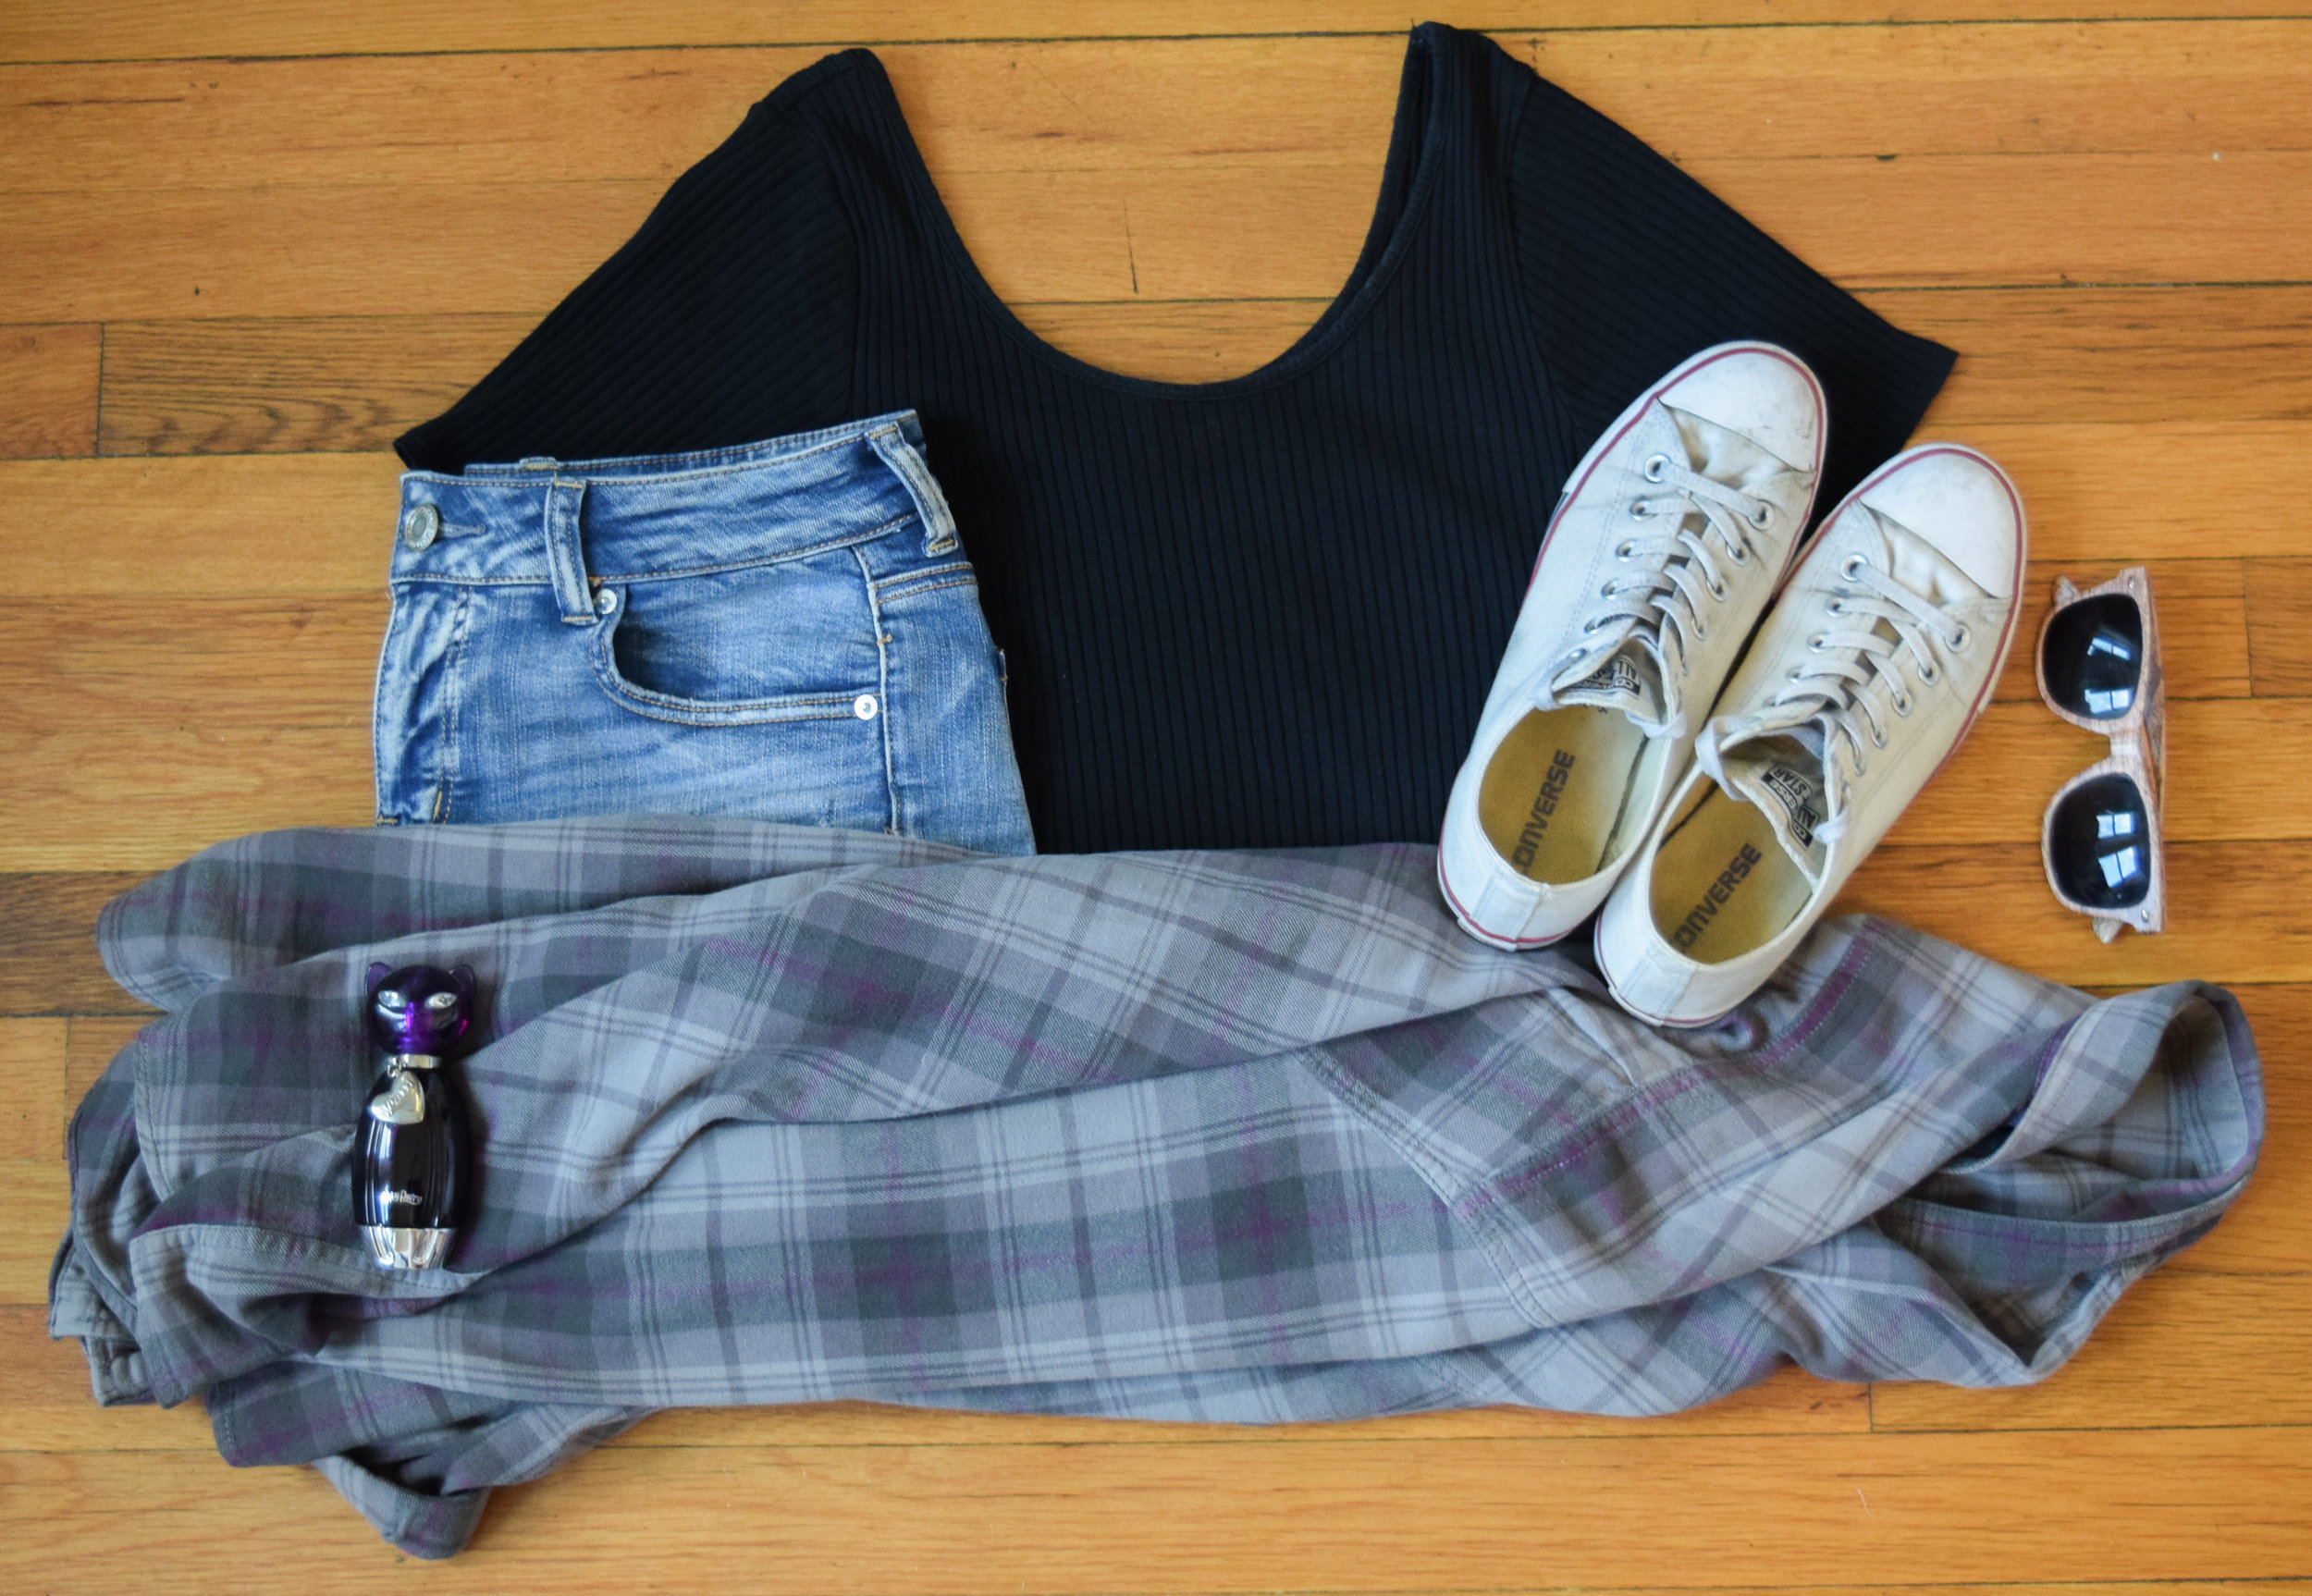 flannel (no clue, i'm sorry!).  bodysuit .  shorts .  sneakers .  perfume .  sunglasses  (similar, the linked pair is a bit darker).